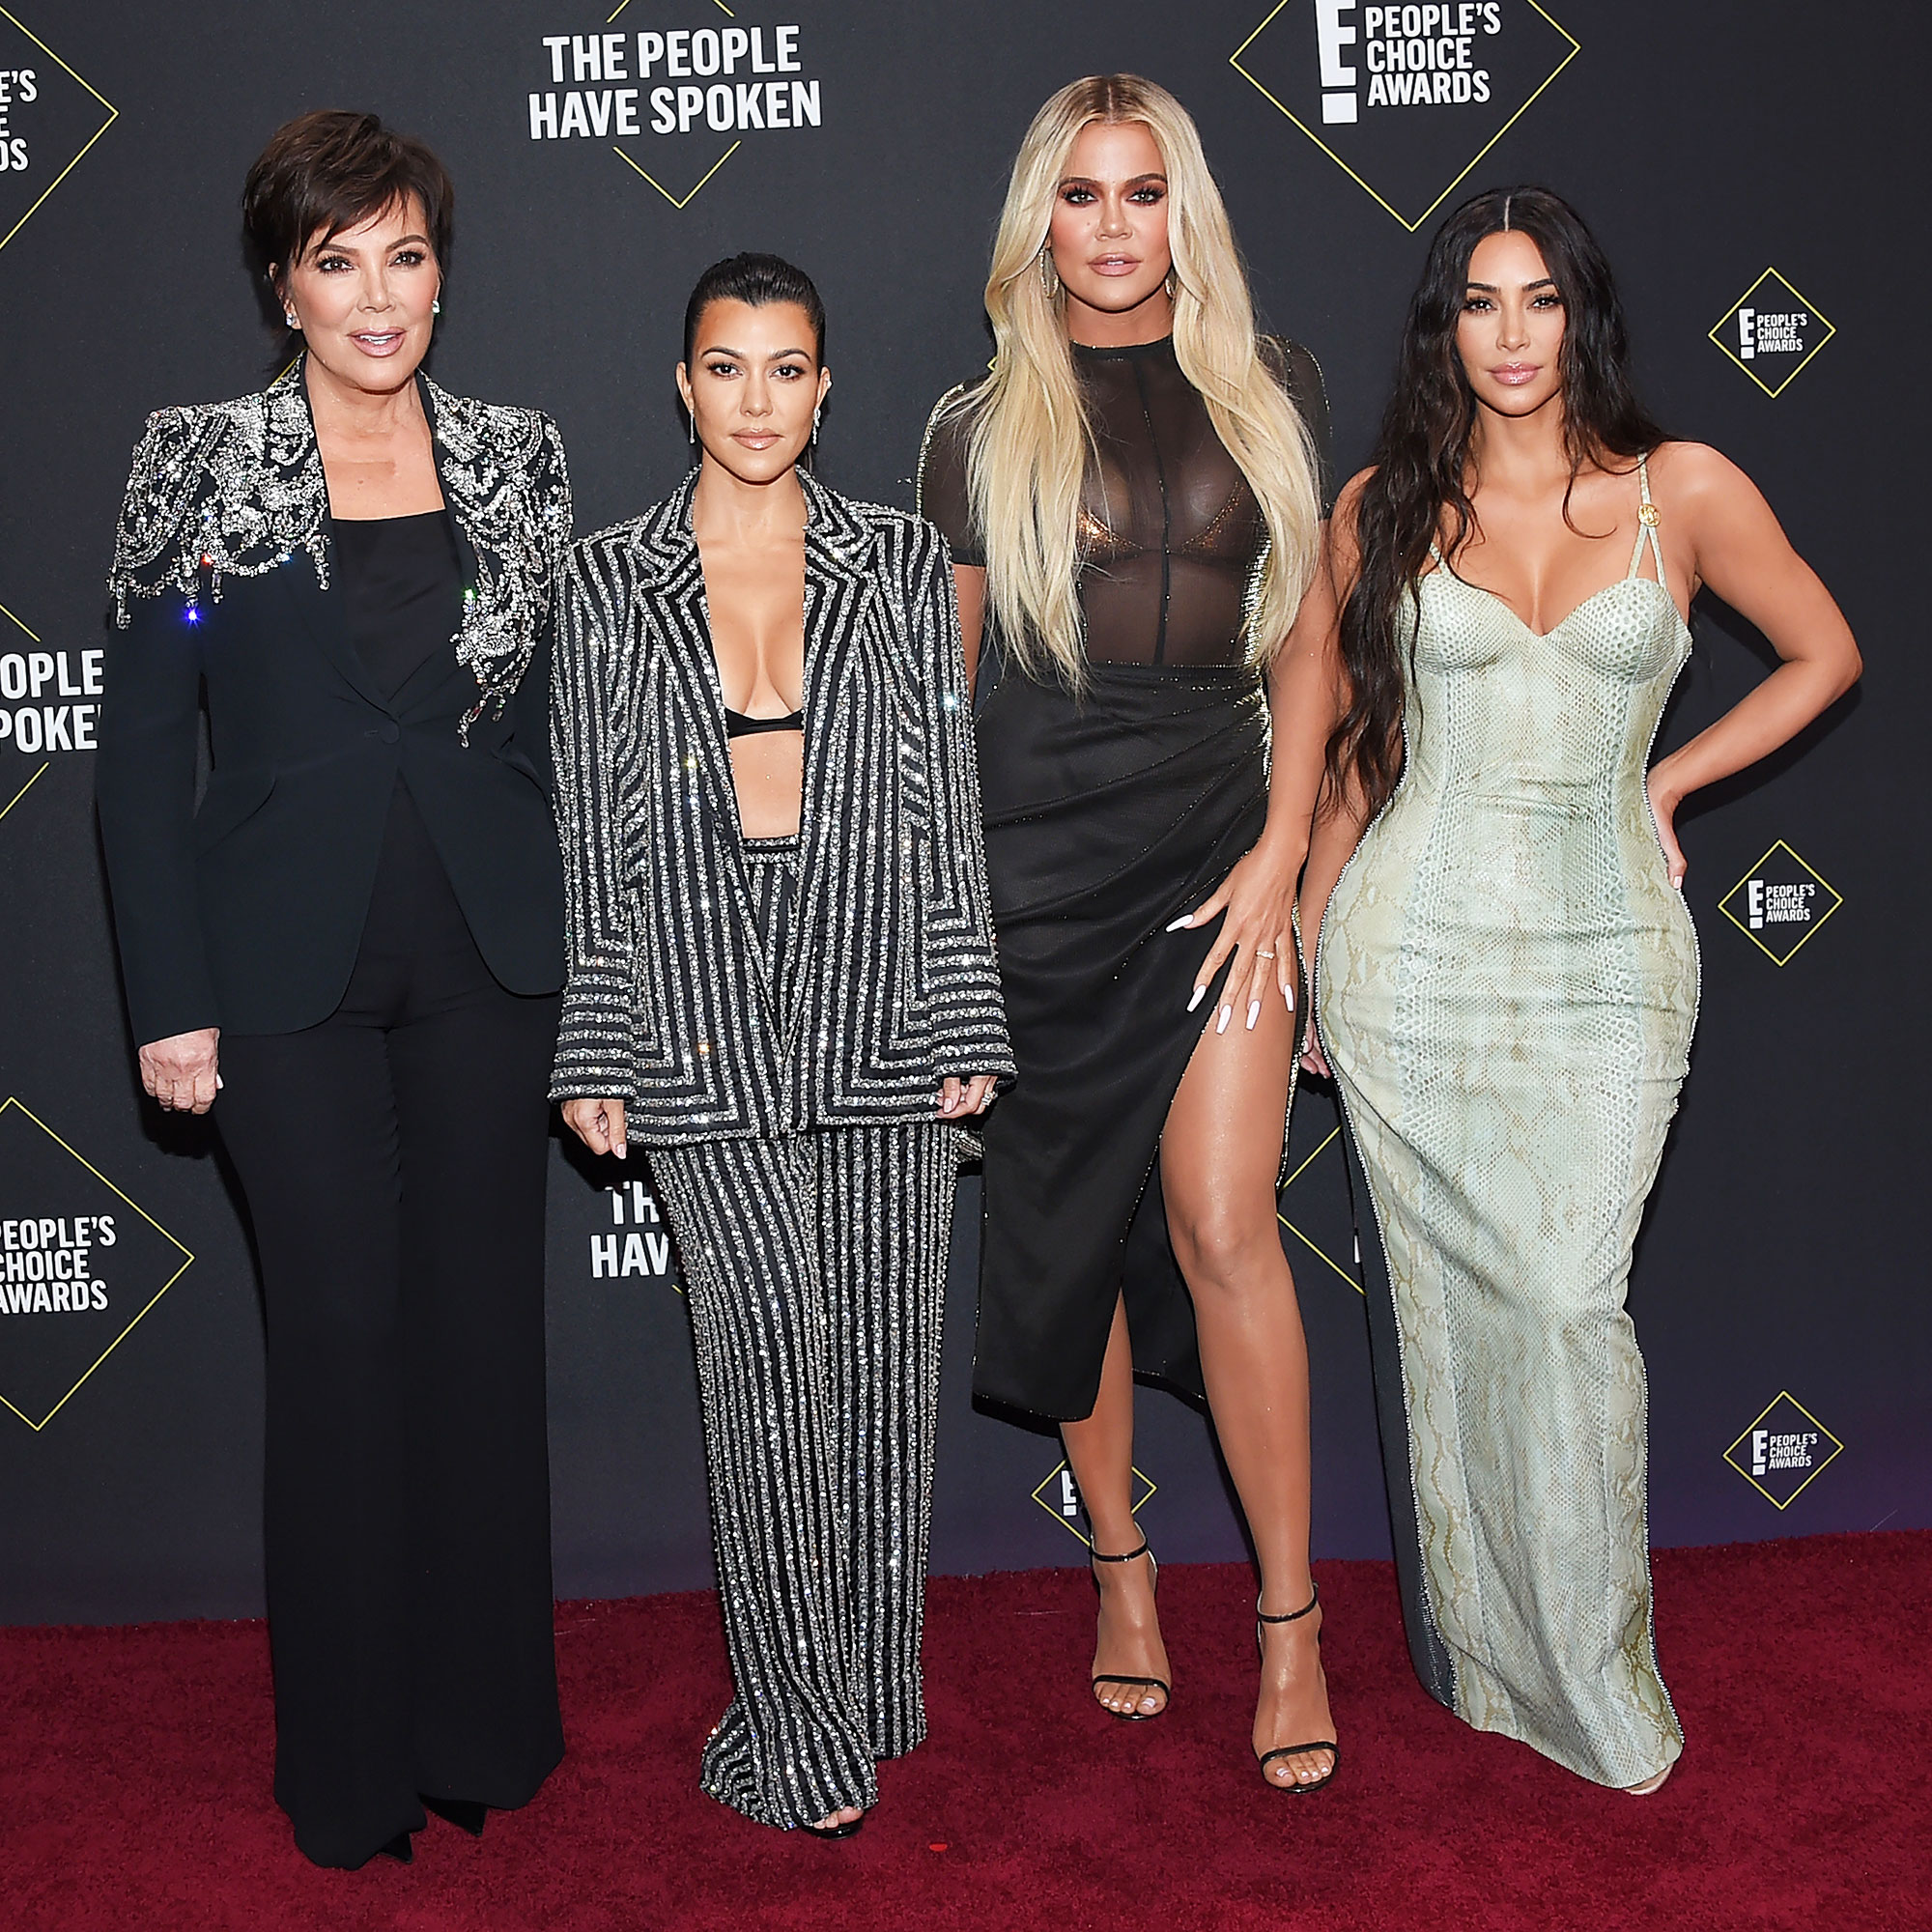 Kris Jenner Kourtney Kardashian Khloe Kardashian and Kim Kardashian at the Peoples Choice Awards 2019 Kim Kardashian and Her Family Think Kanye West Crossed a Line by Sharing Private Family Matters